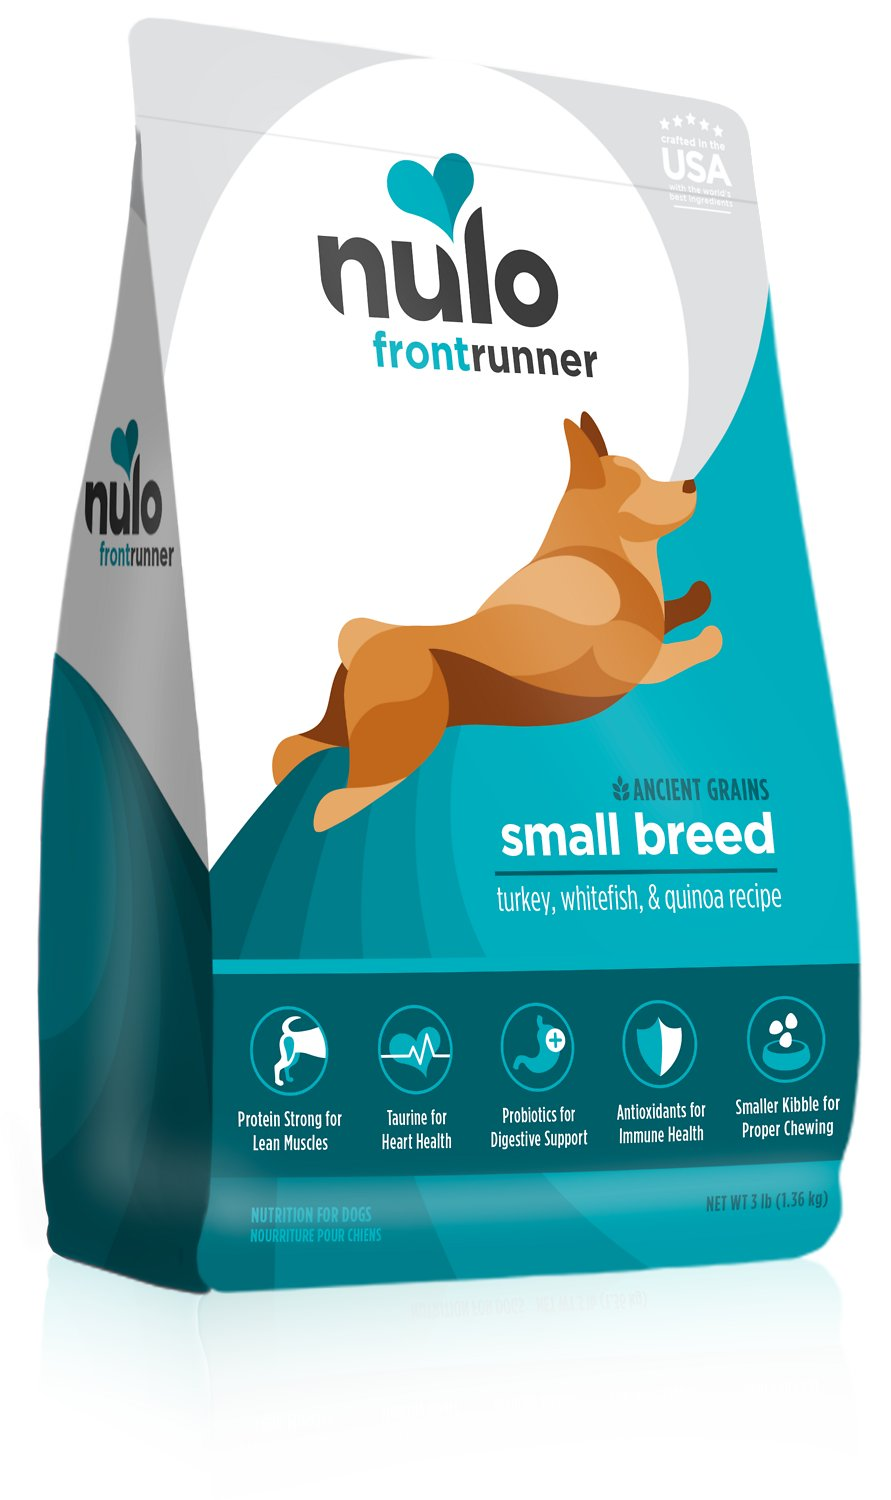 Nulo Frontrunner Ancient Grains Turkey, Whitefish & Quinoa Small Breed Dry Dog Food Image